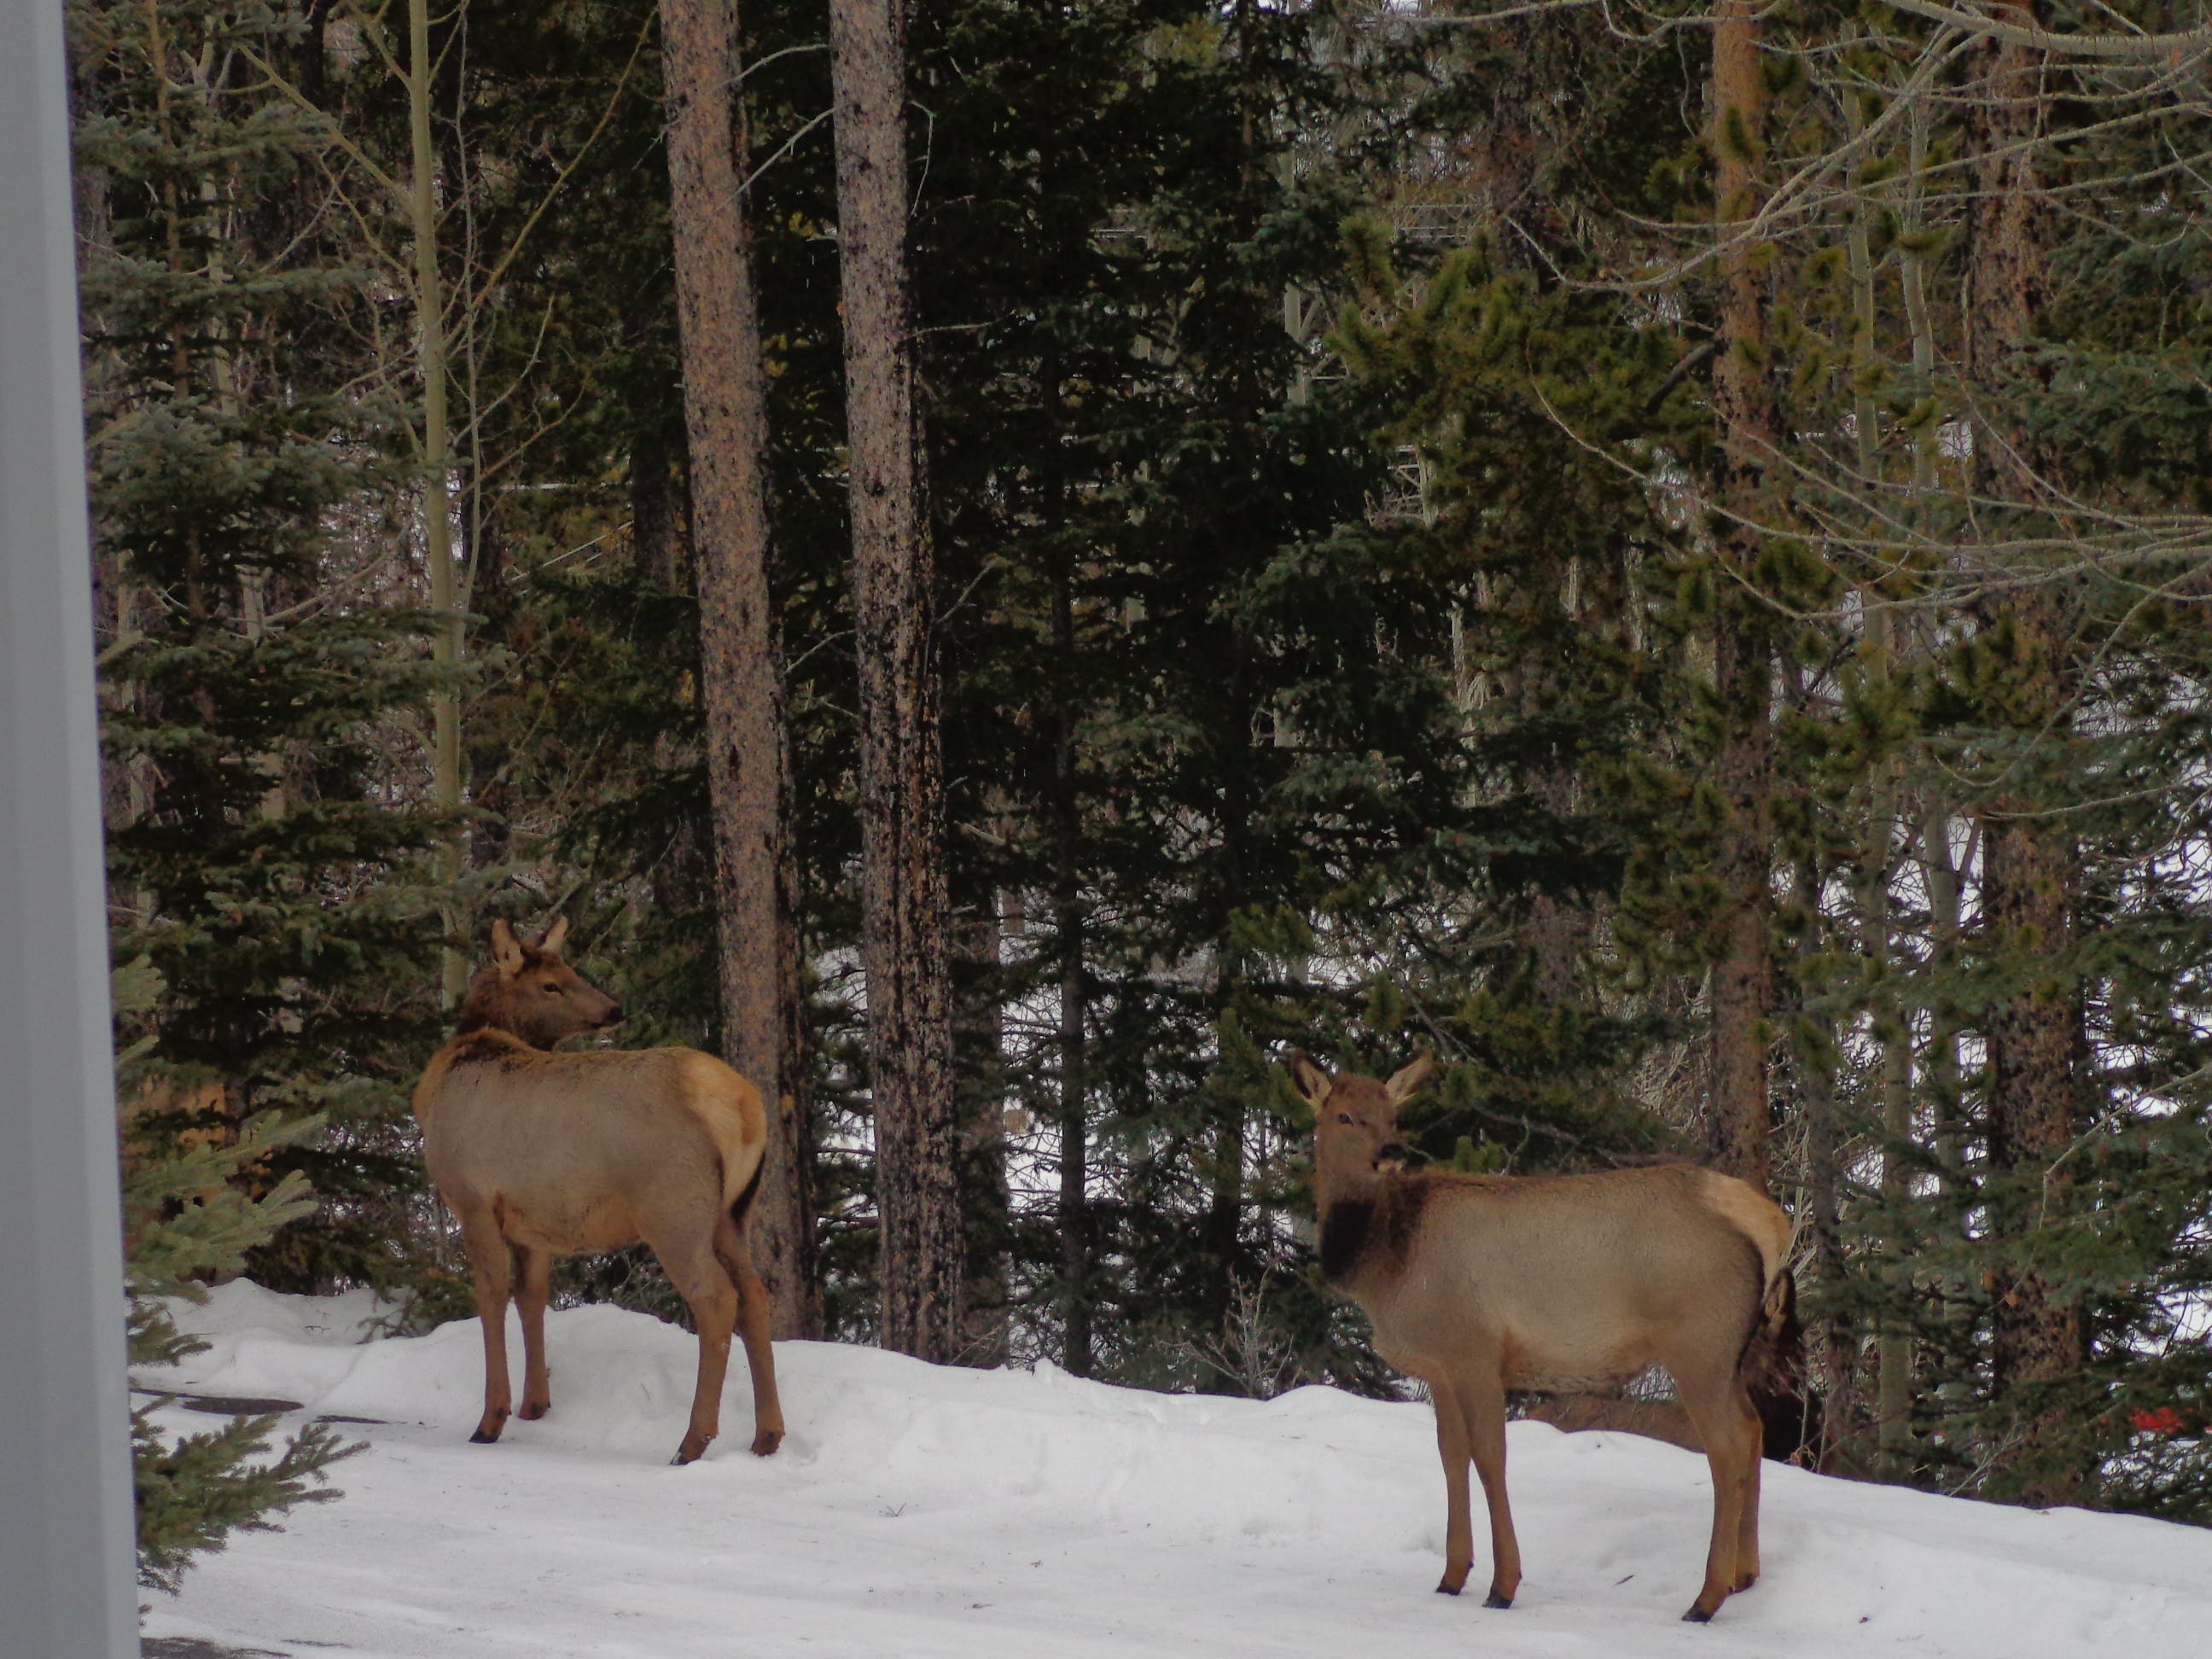 Groups of elk are frequent tourists around Ballyrock in Canmore